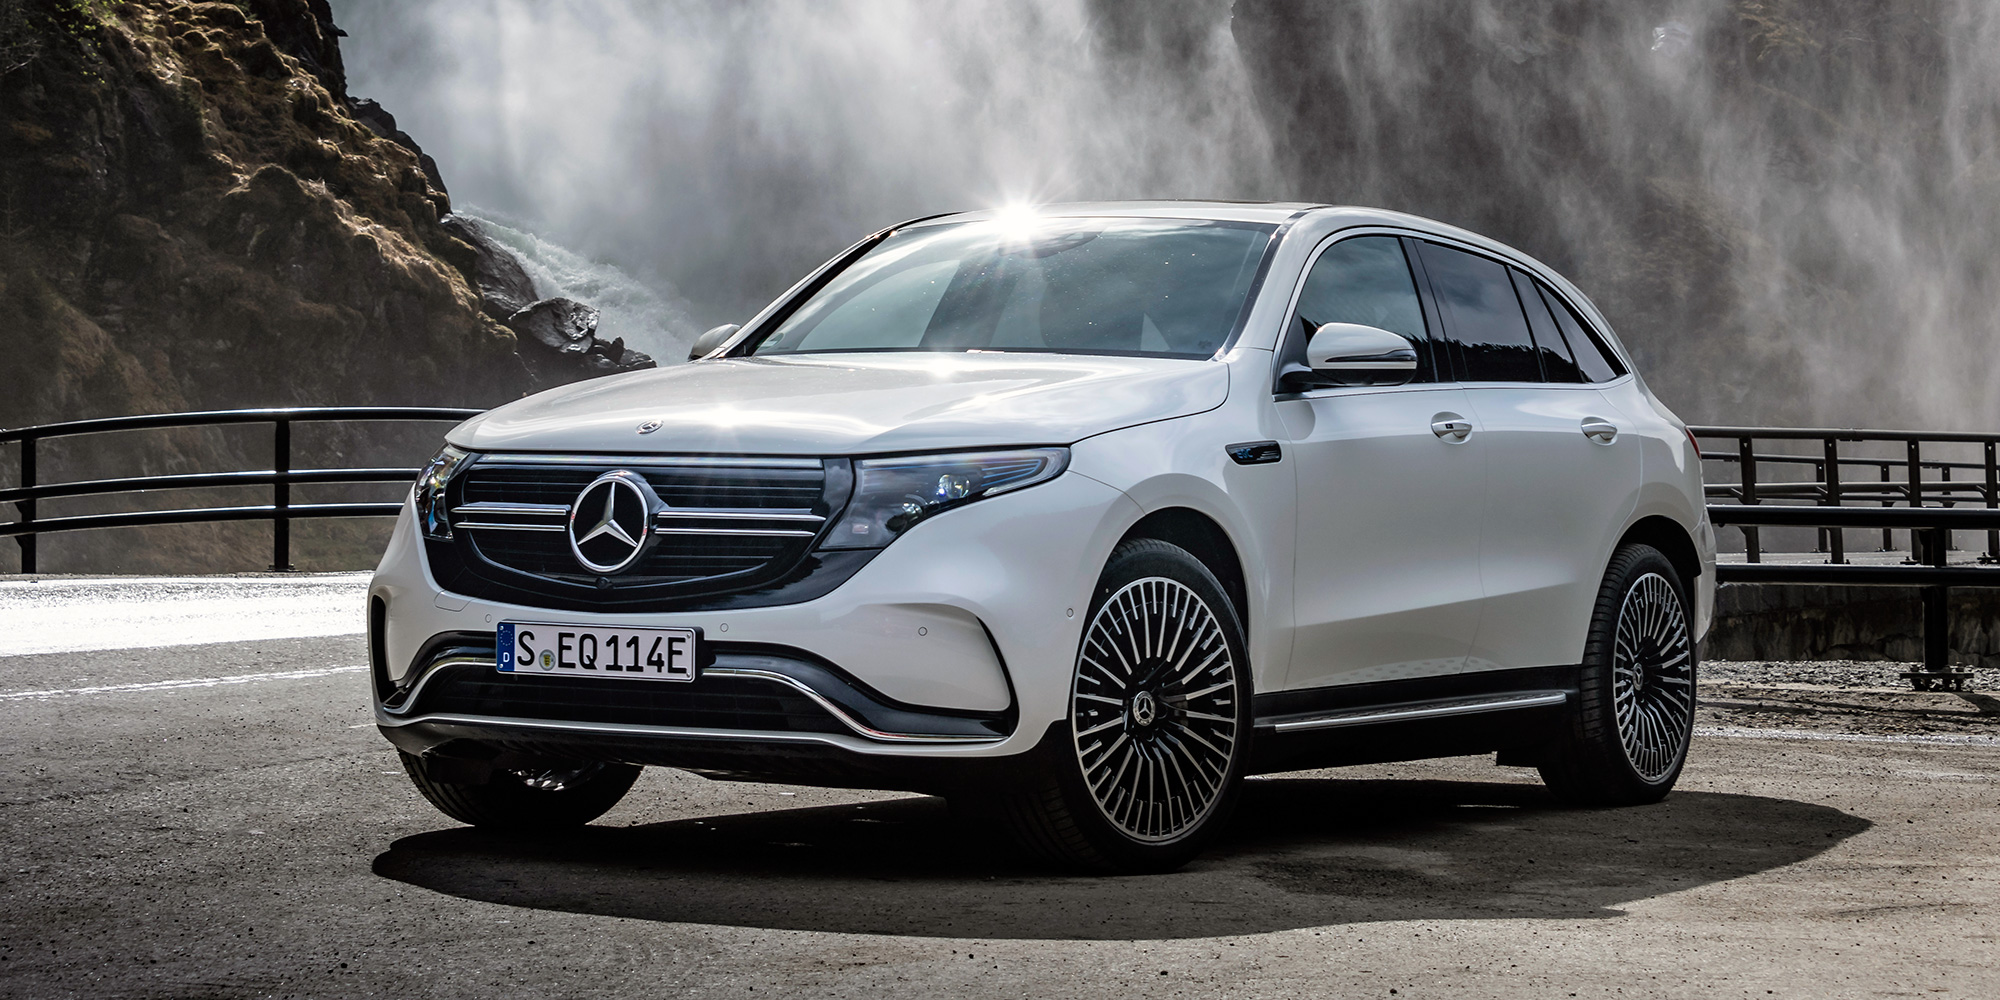 Mercedes Benz Cuts Eqc Electric Suv Production Target In Half Due To Battery Shortage Report Says Electrek